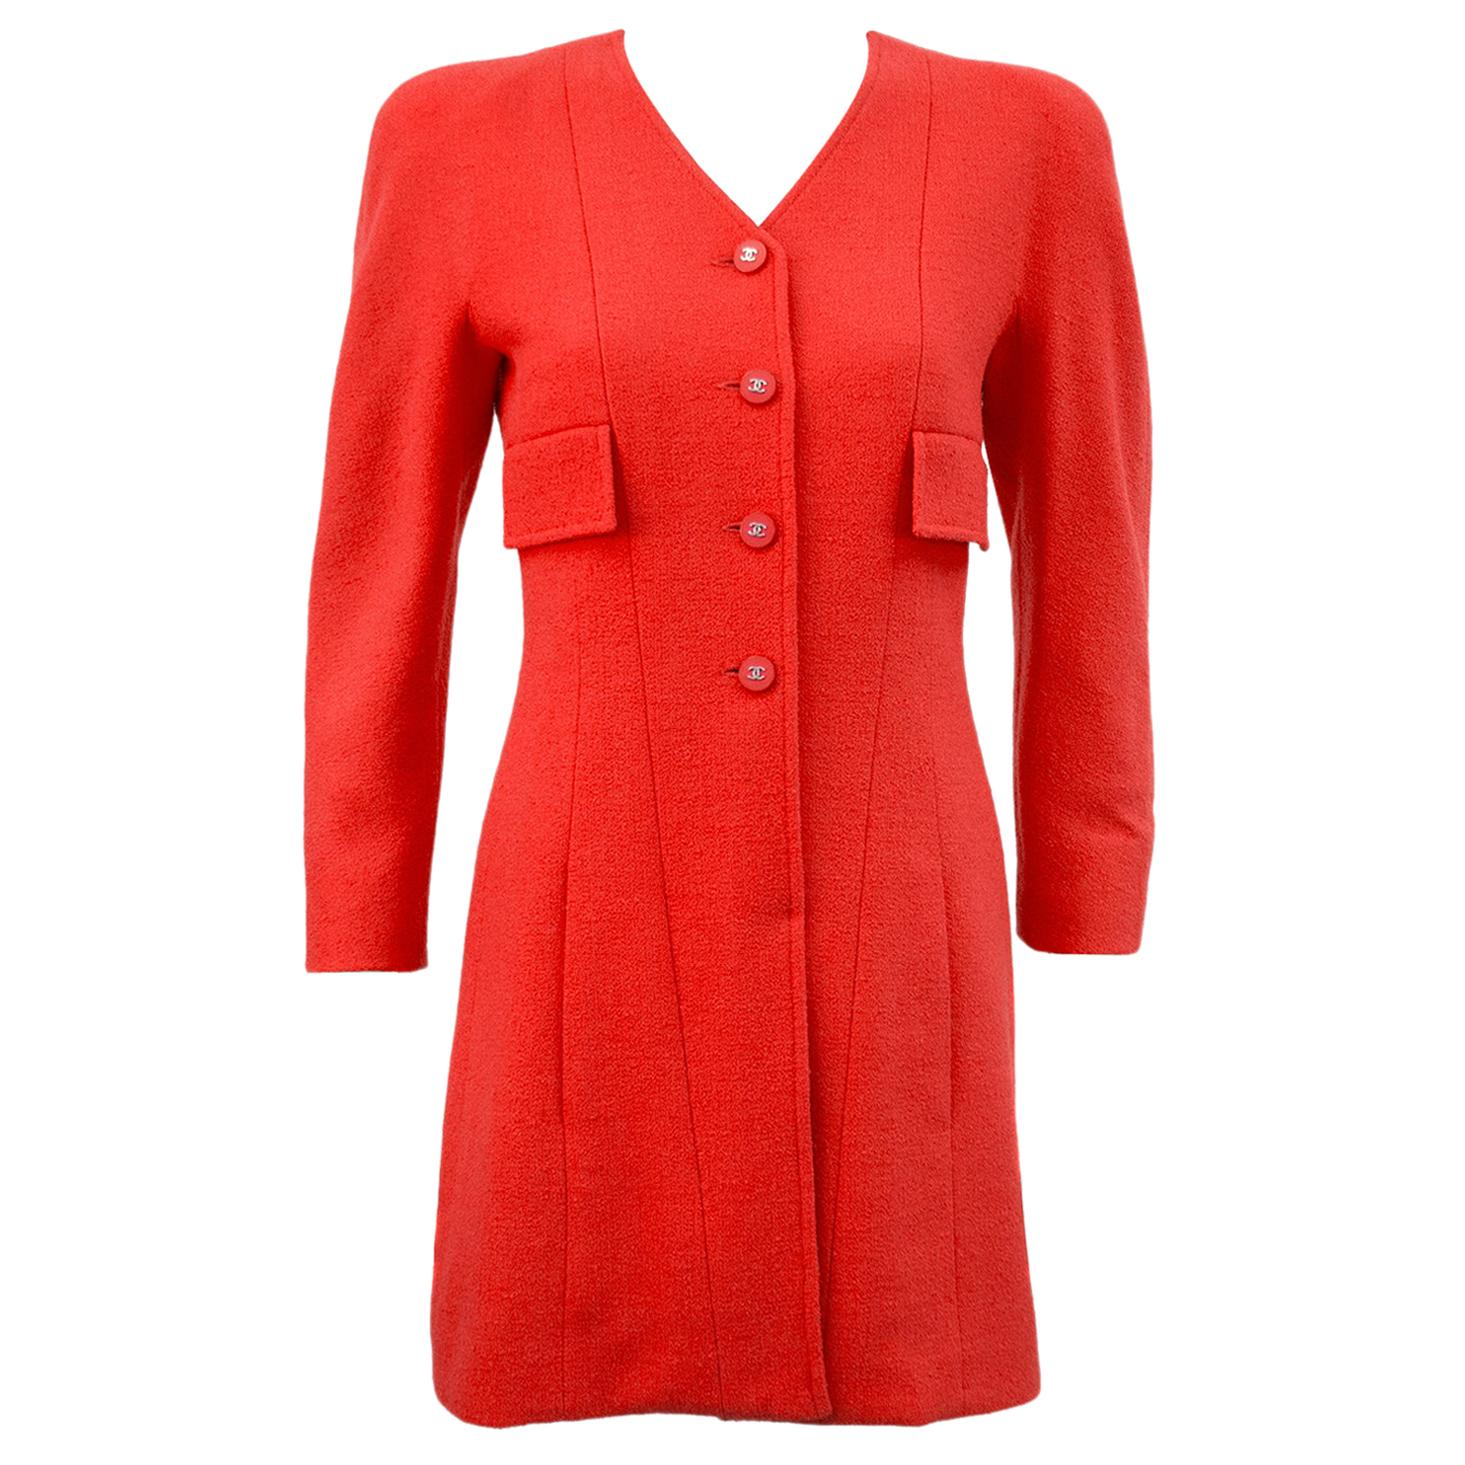 Spring 1996 Chanel Coral Wool Day Dress